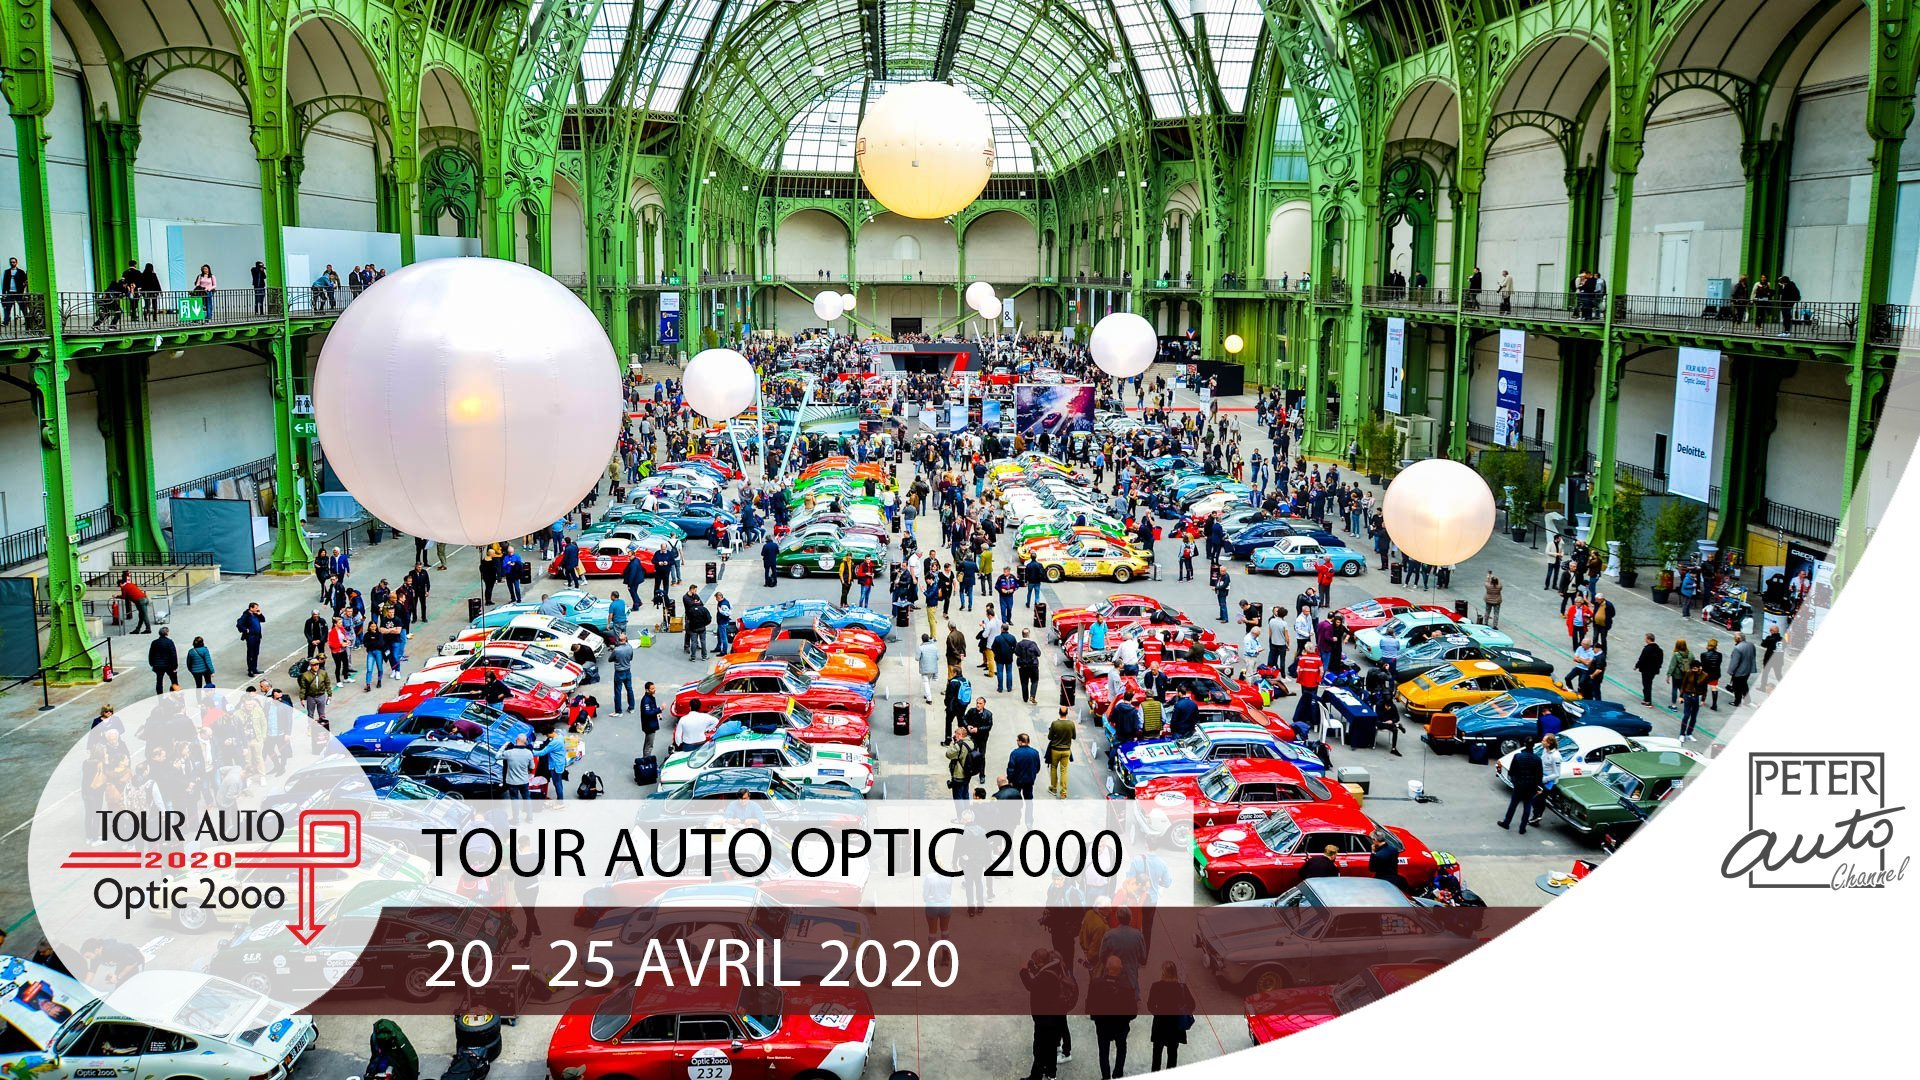 Tour Auto Optic 2000 2020